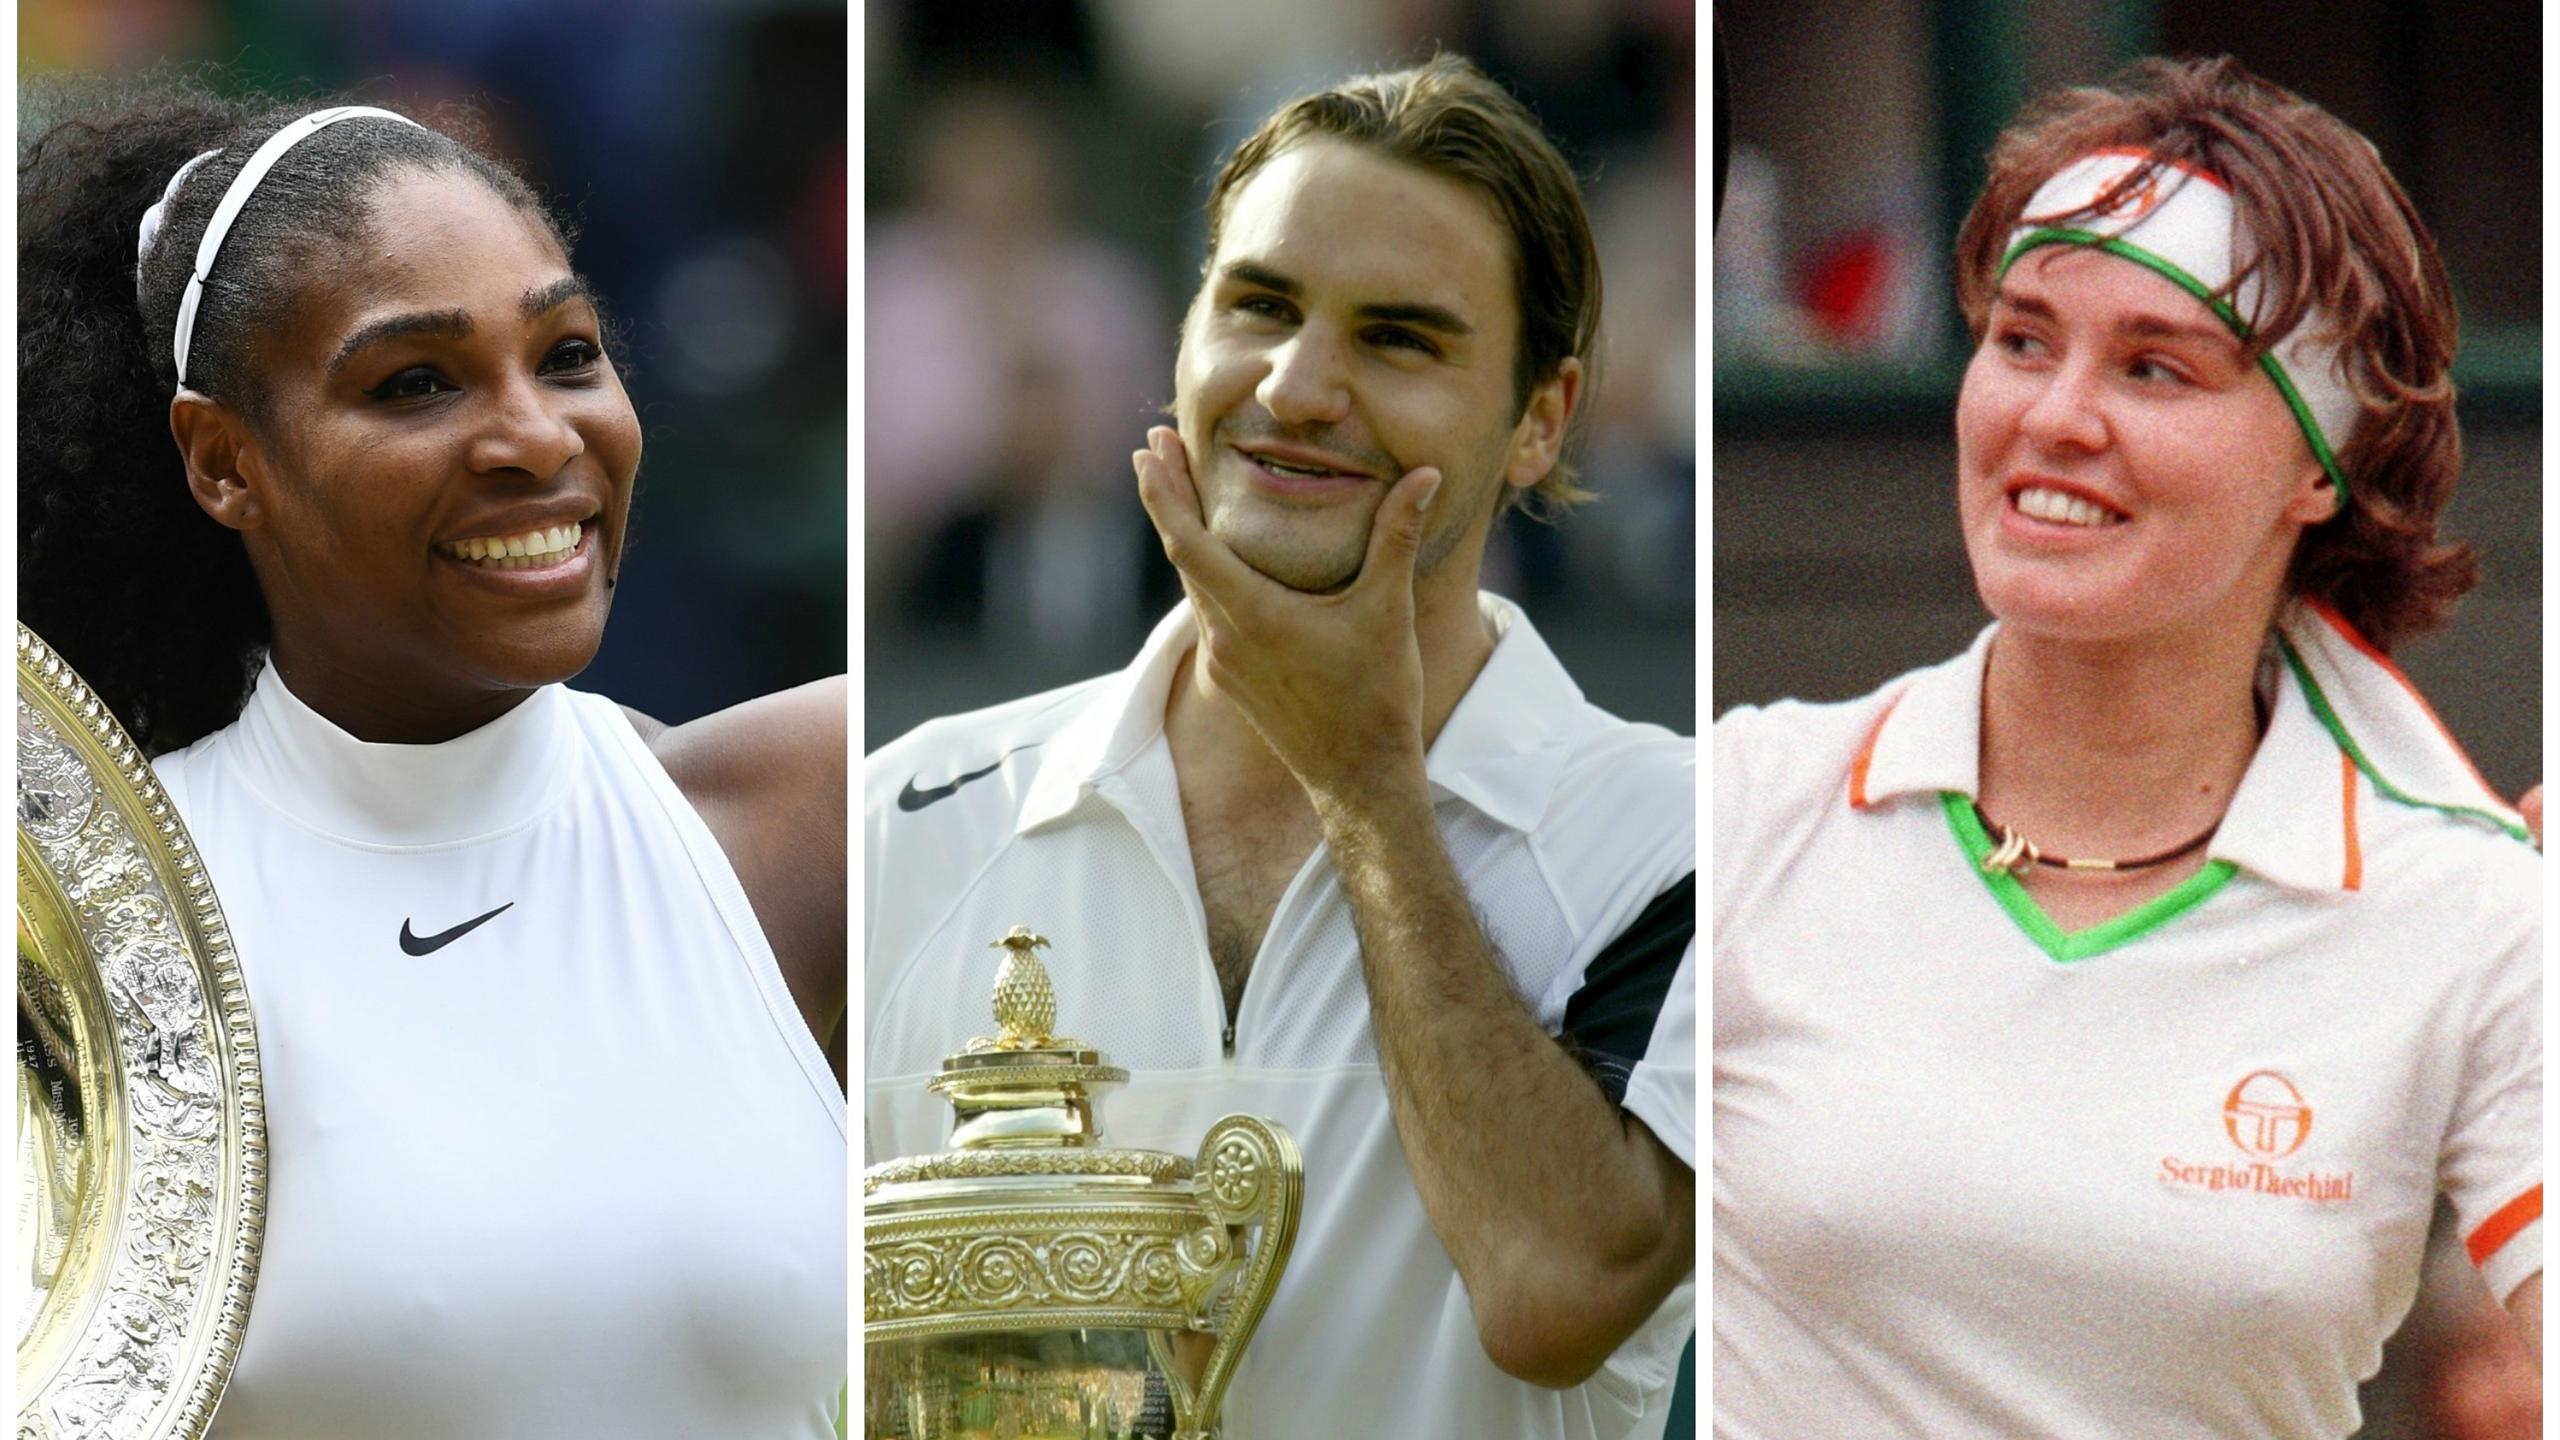 Serena Williams, Roger Federer and Martina Hingis